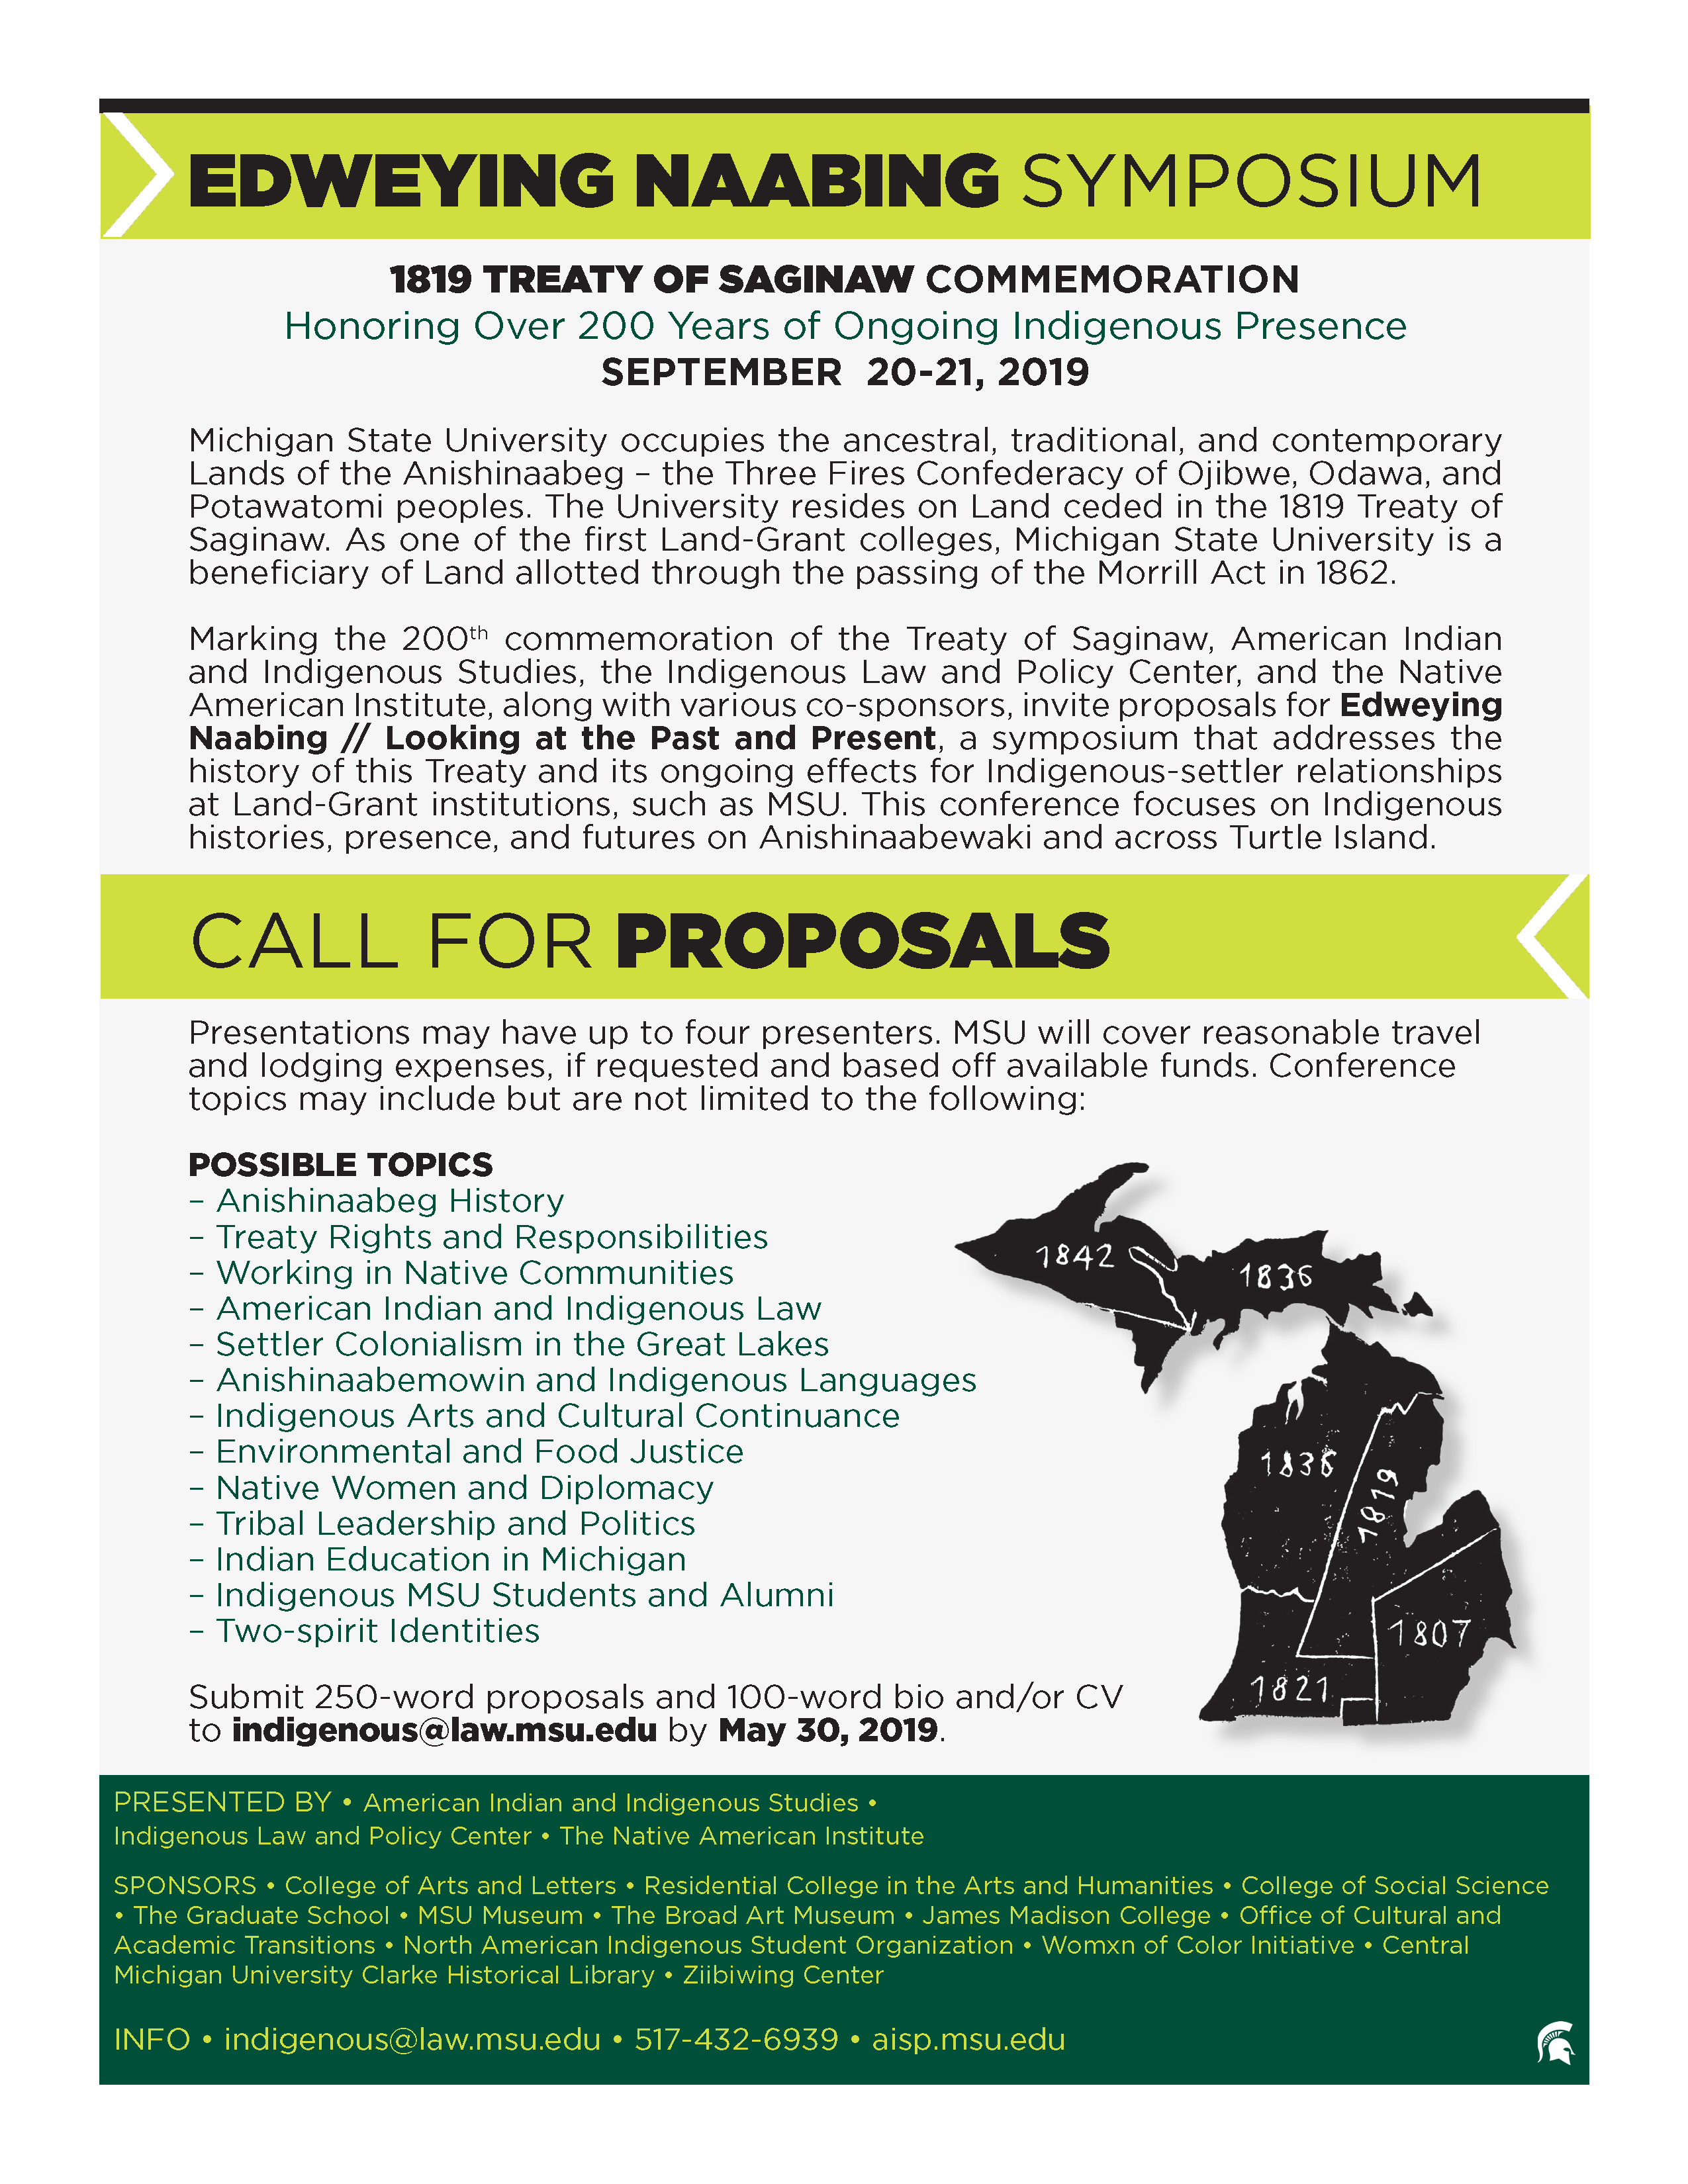 Call for Proposals: Edweying Naabing // Looking at the Past